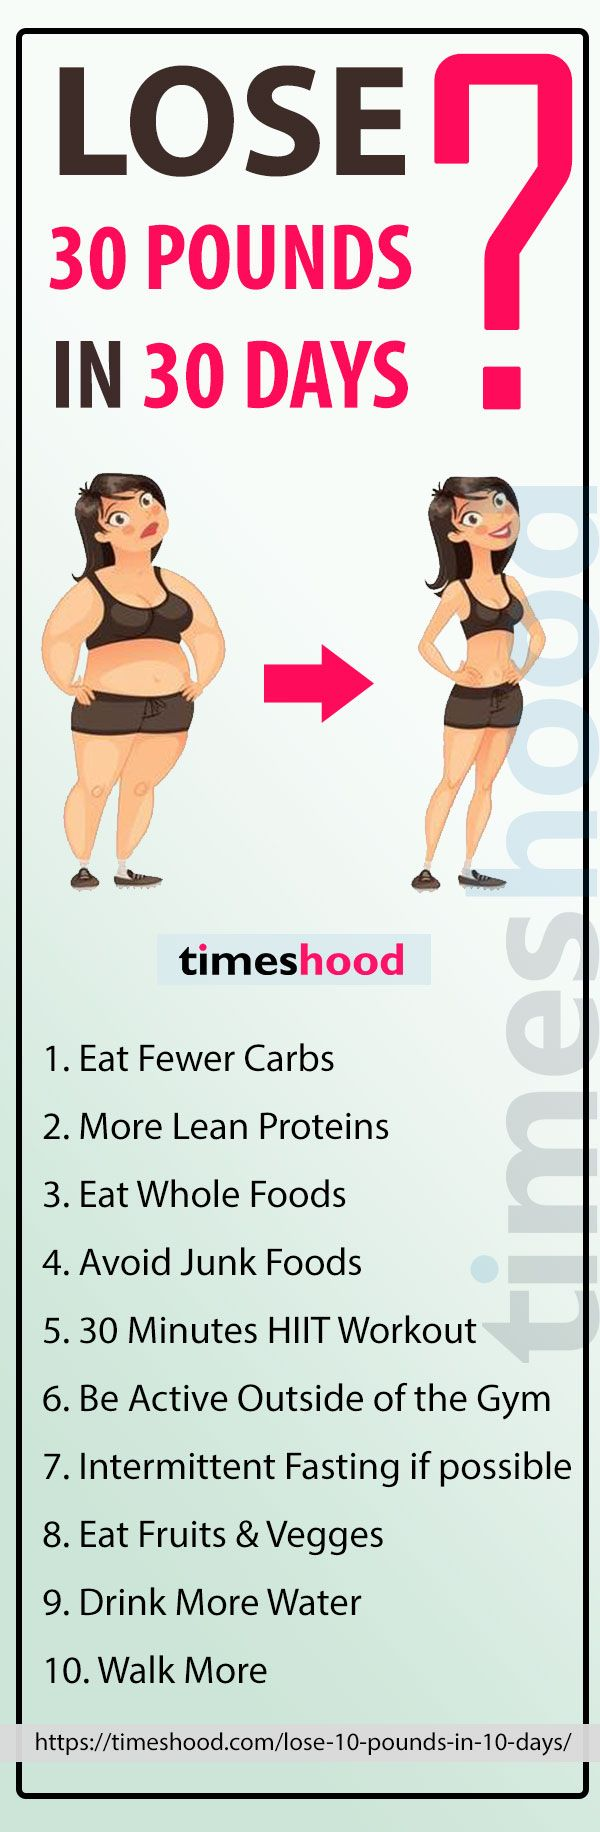 Fast Weight Loss: Lose 10 Pounds in 10 Days (Diet + Workout